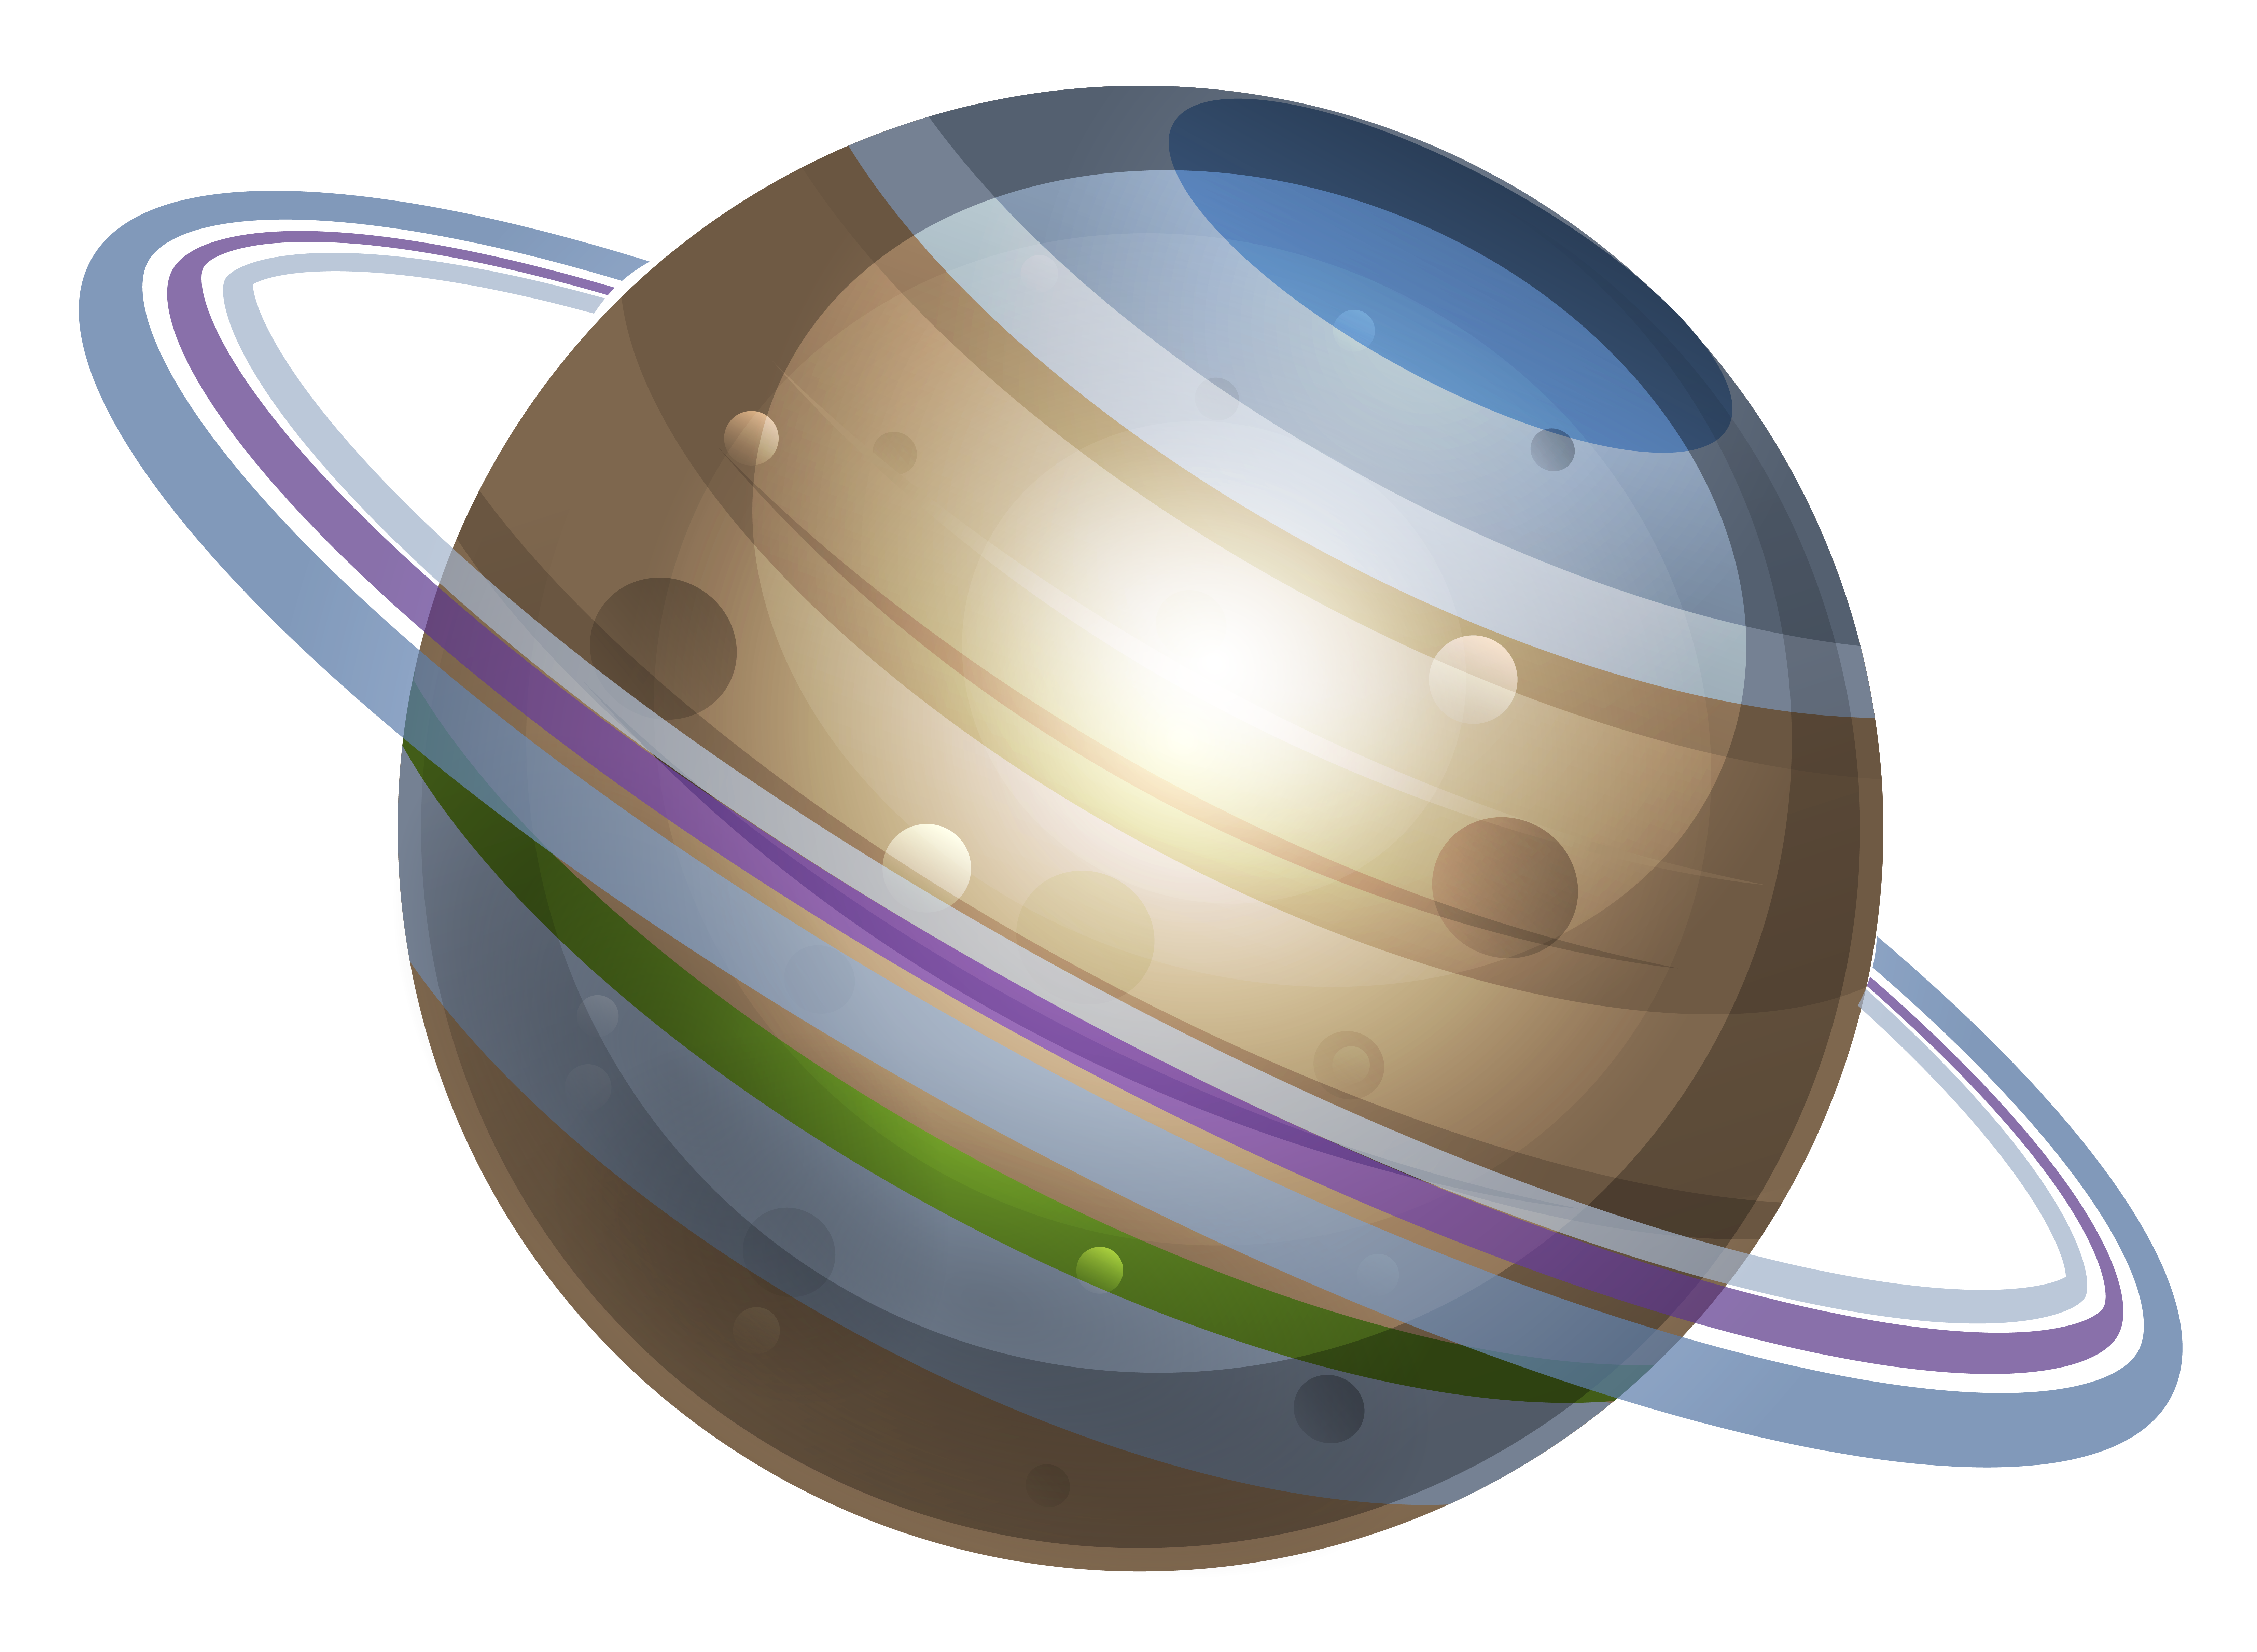 vector royalty free Planeten physic minimalistics co. Planet clipart for kids